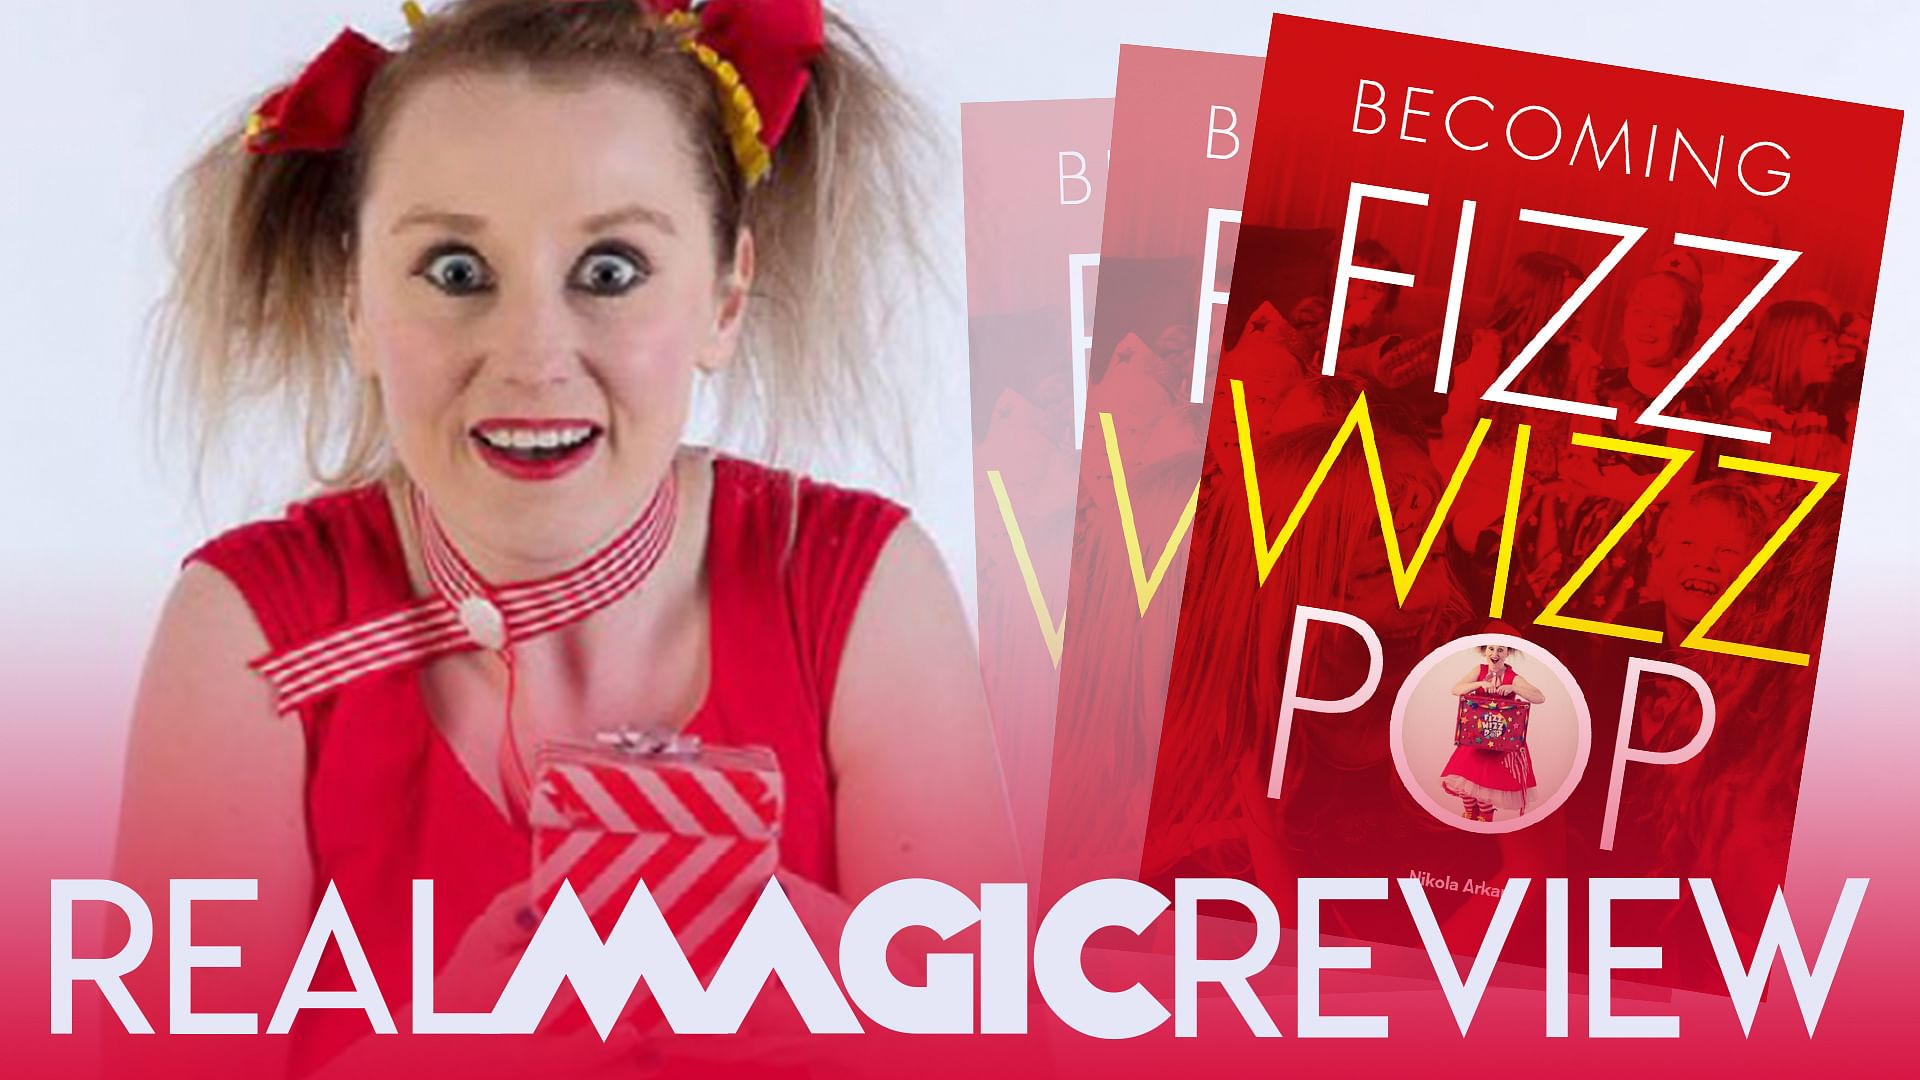 Real Magic Review | Becoming FizzWizzPop